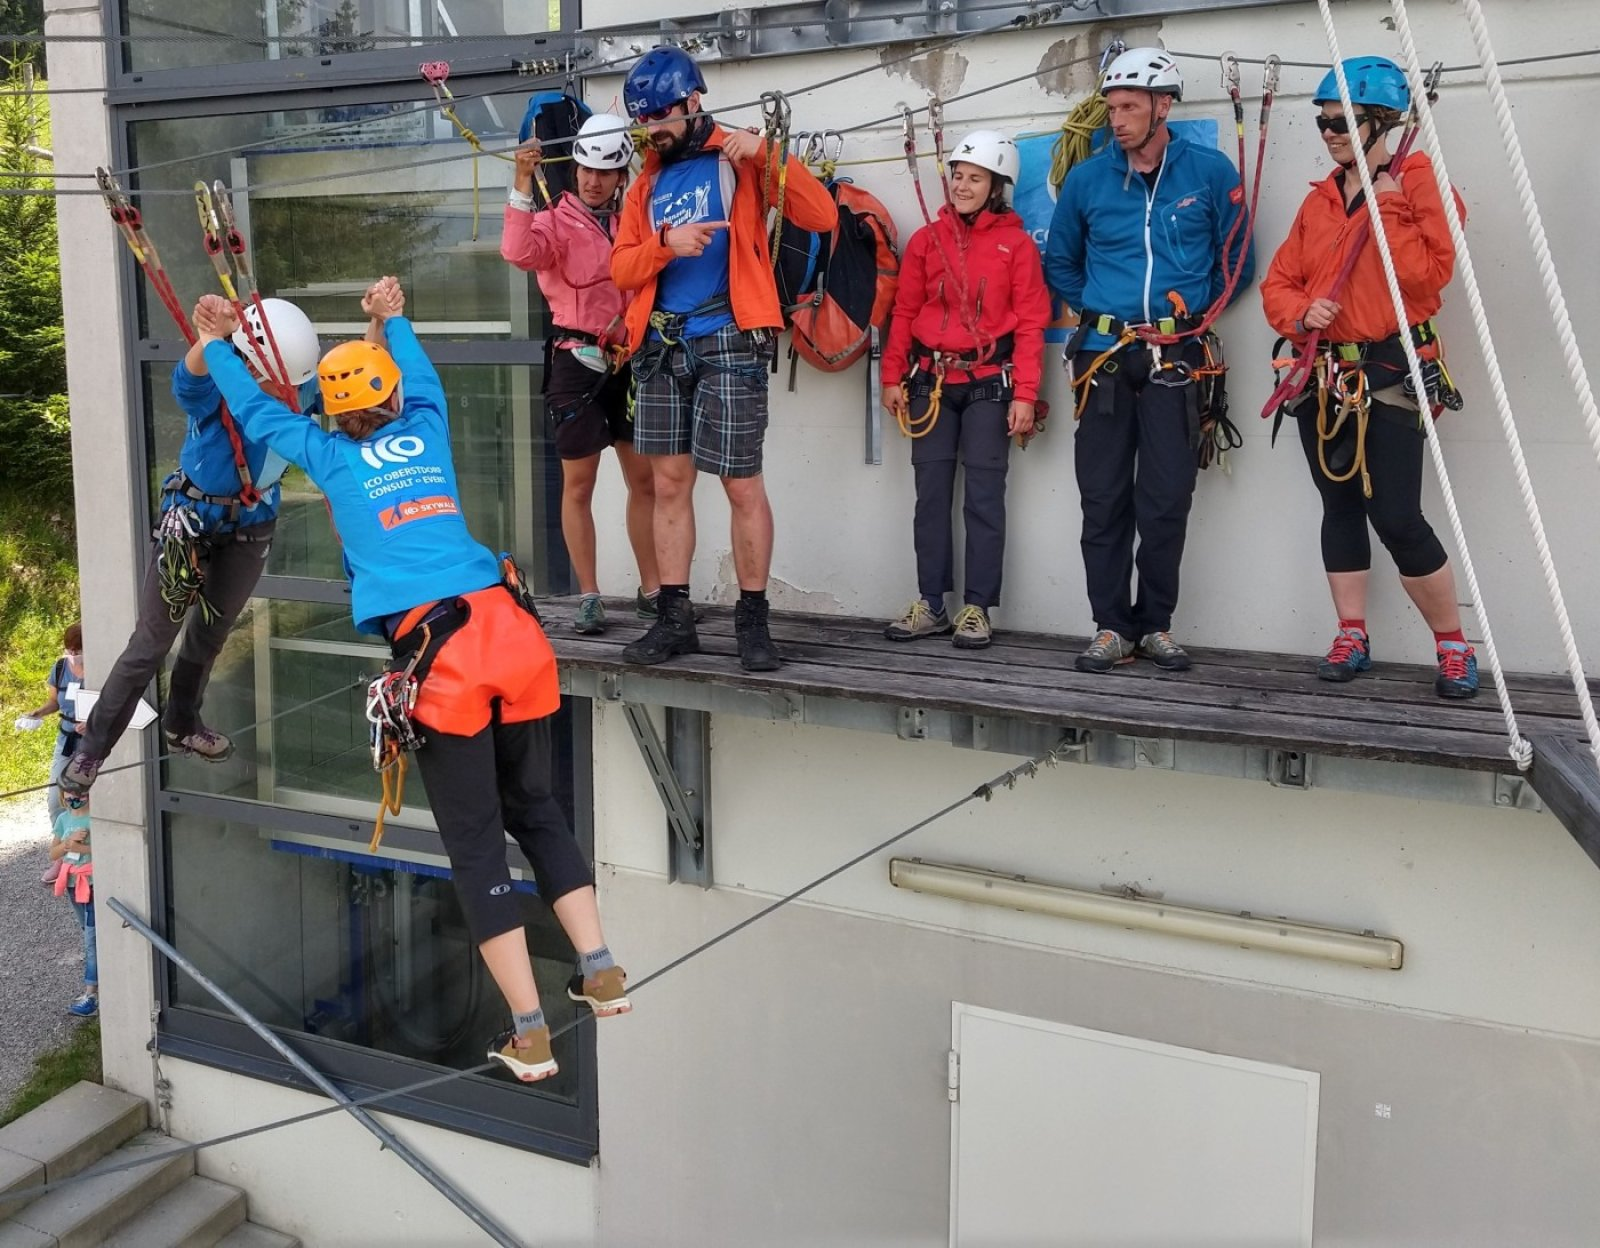 Sicherheits-Training im Skywalk - ICO ImpulseConsult Oberstdorf